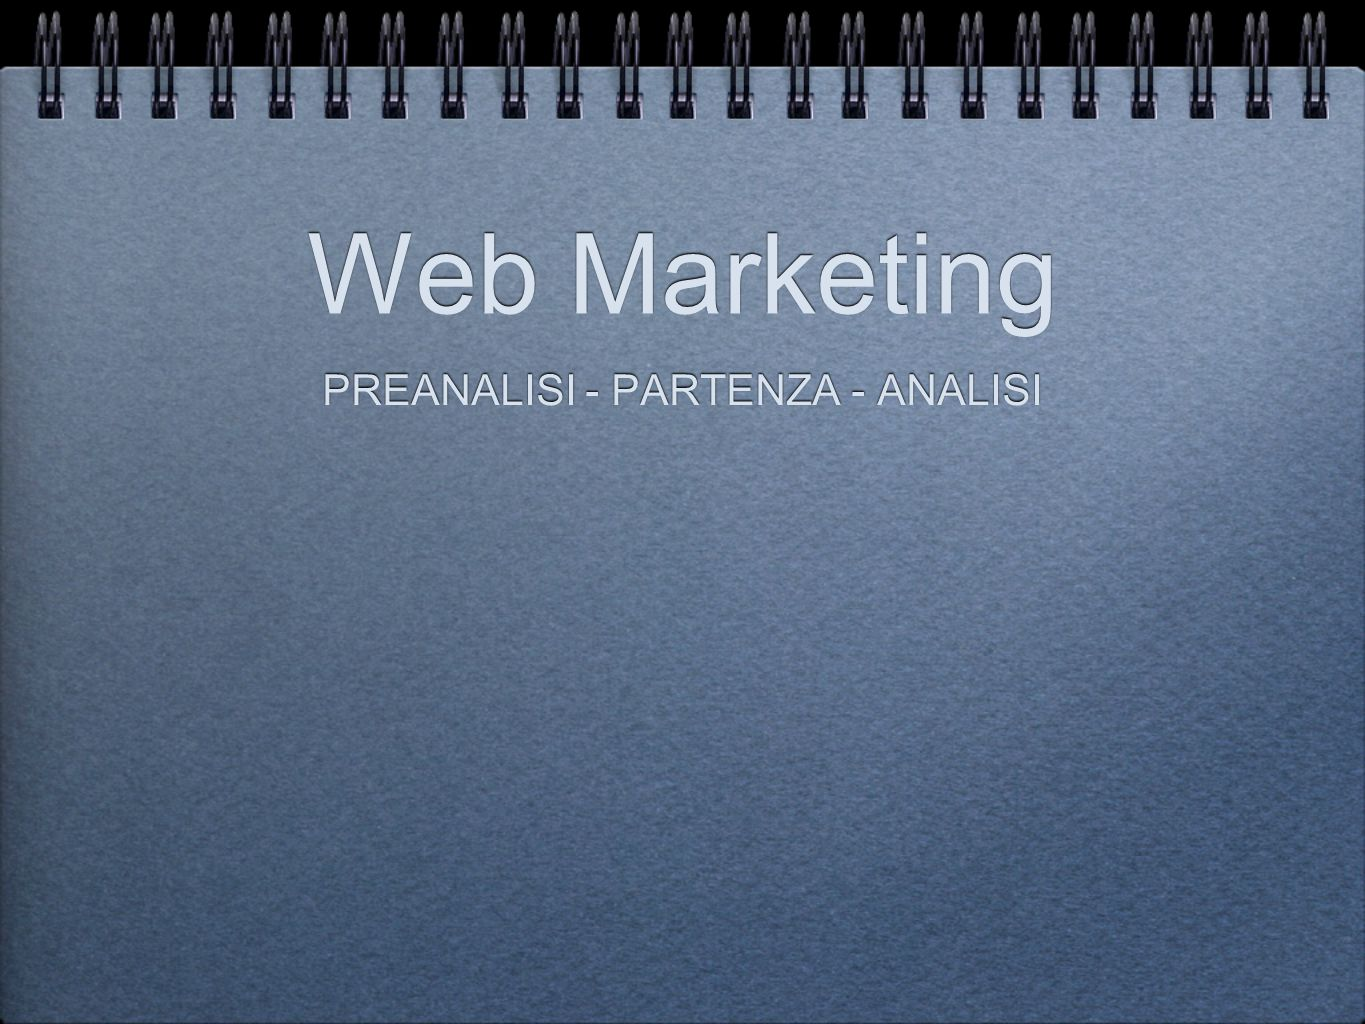 Web Marketing PREANALISI - PARTENZA - ANALISI